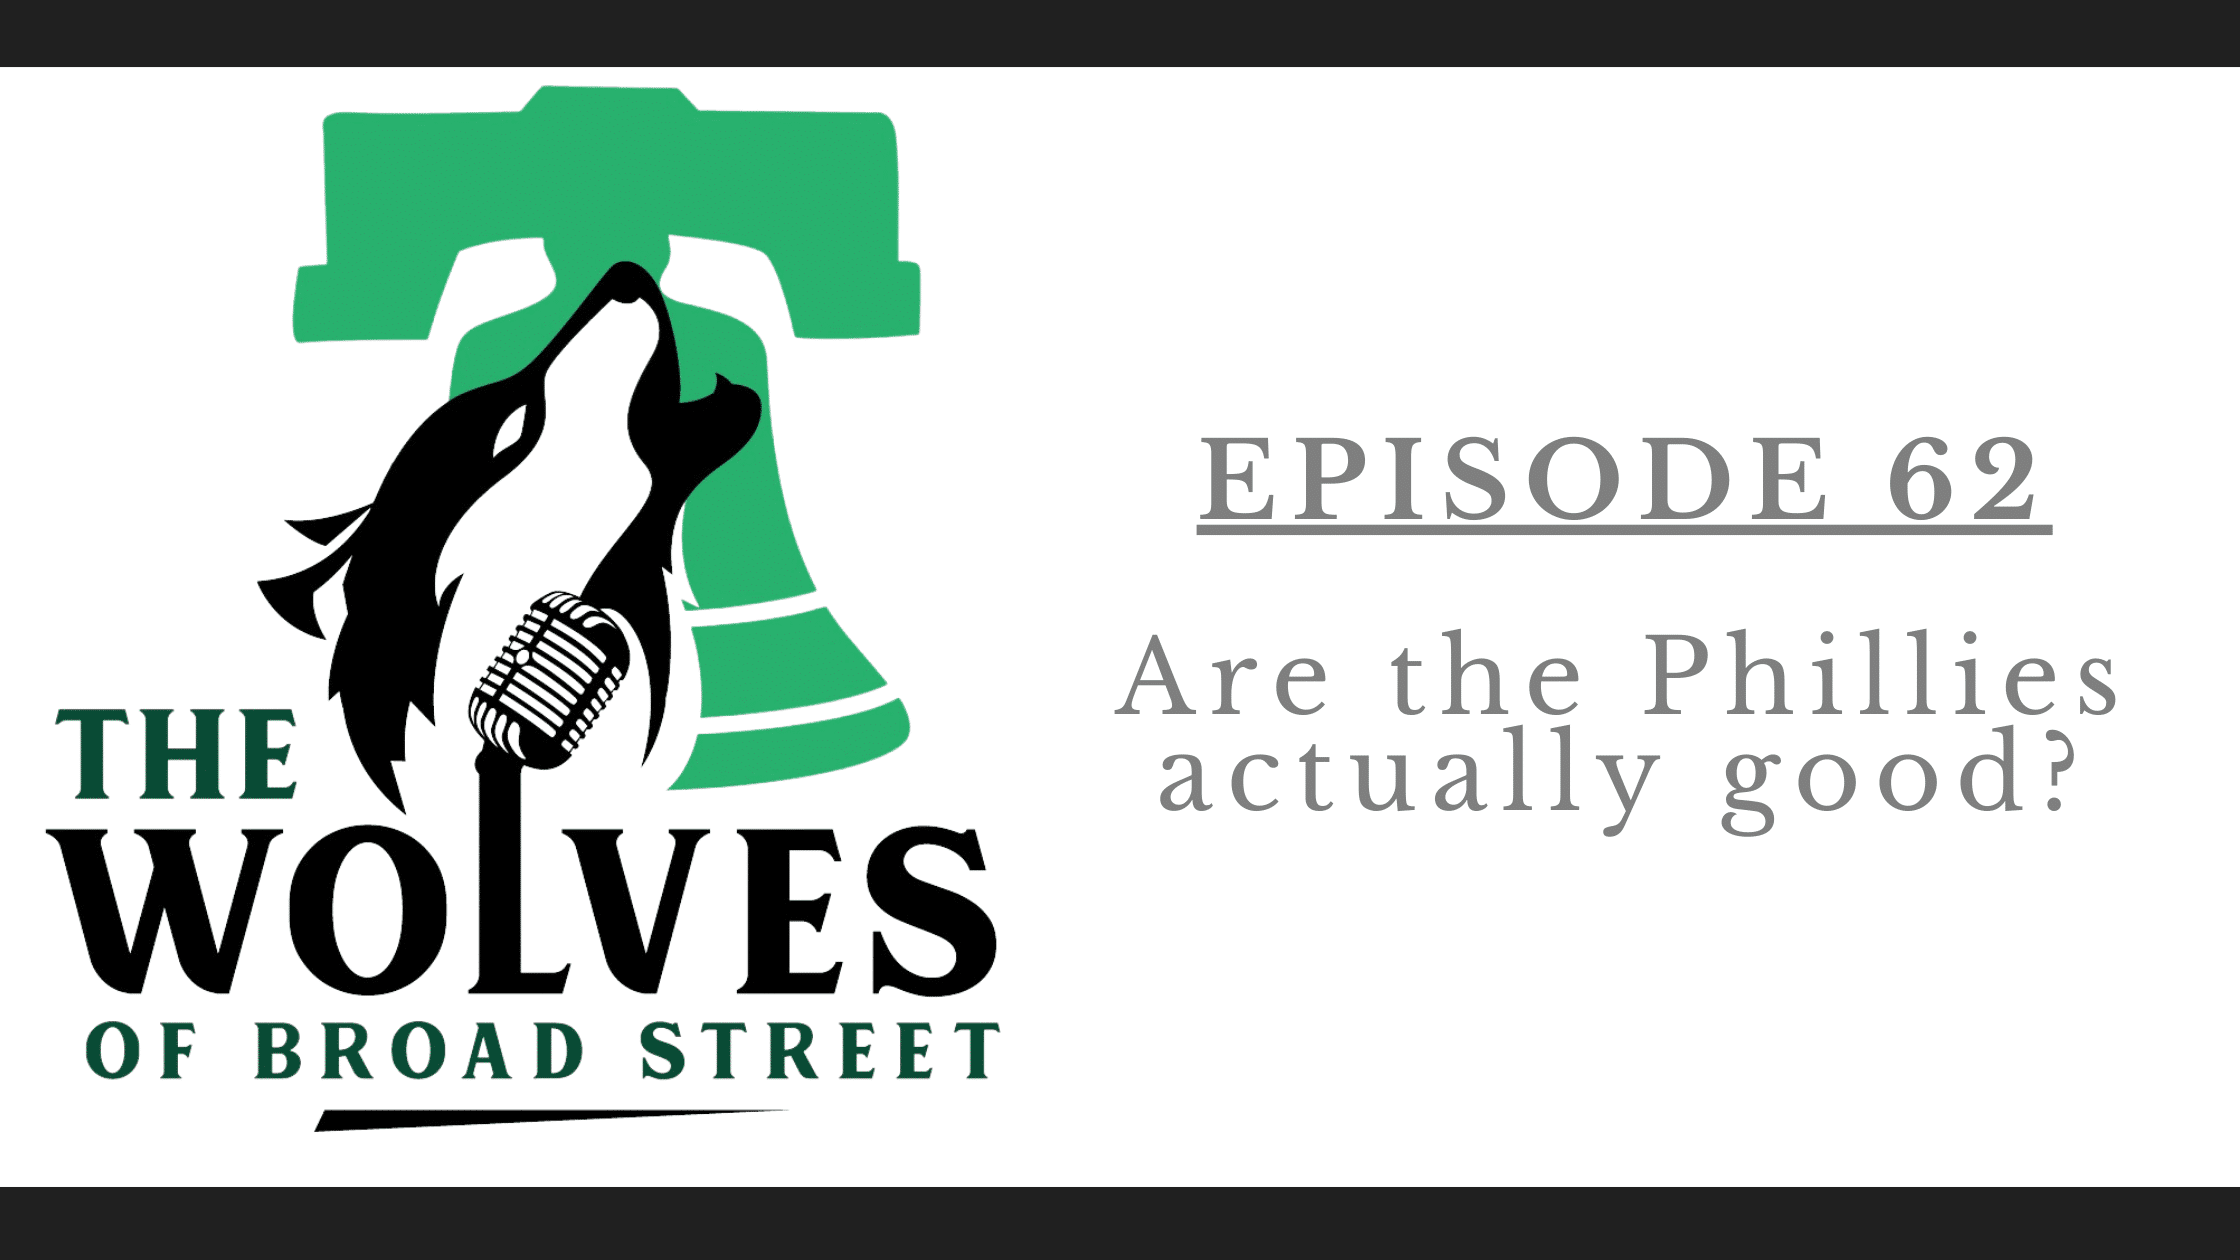 THE WOLVES OF BROAD STREET 62